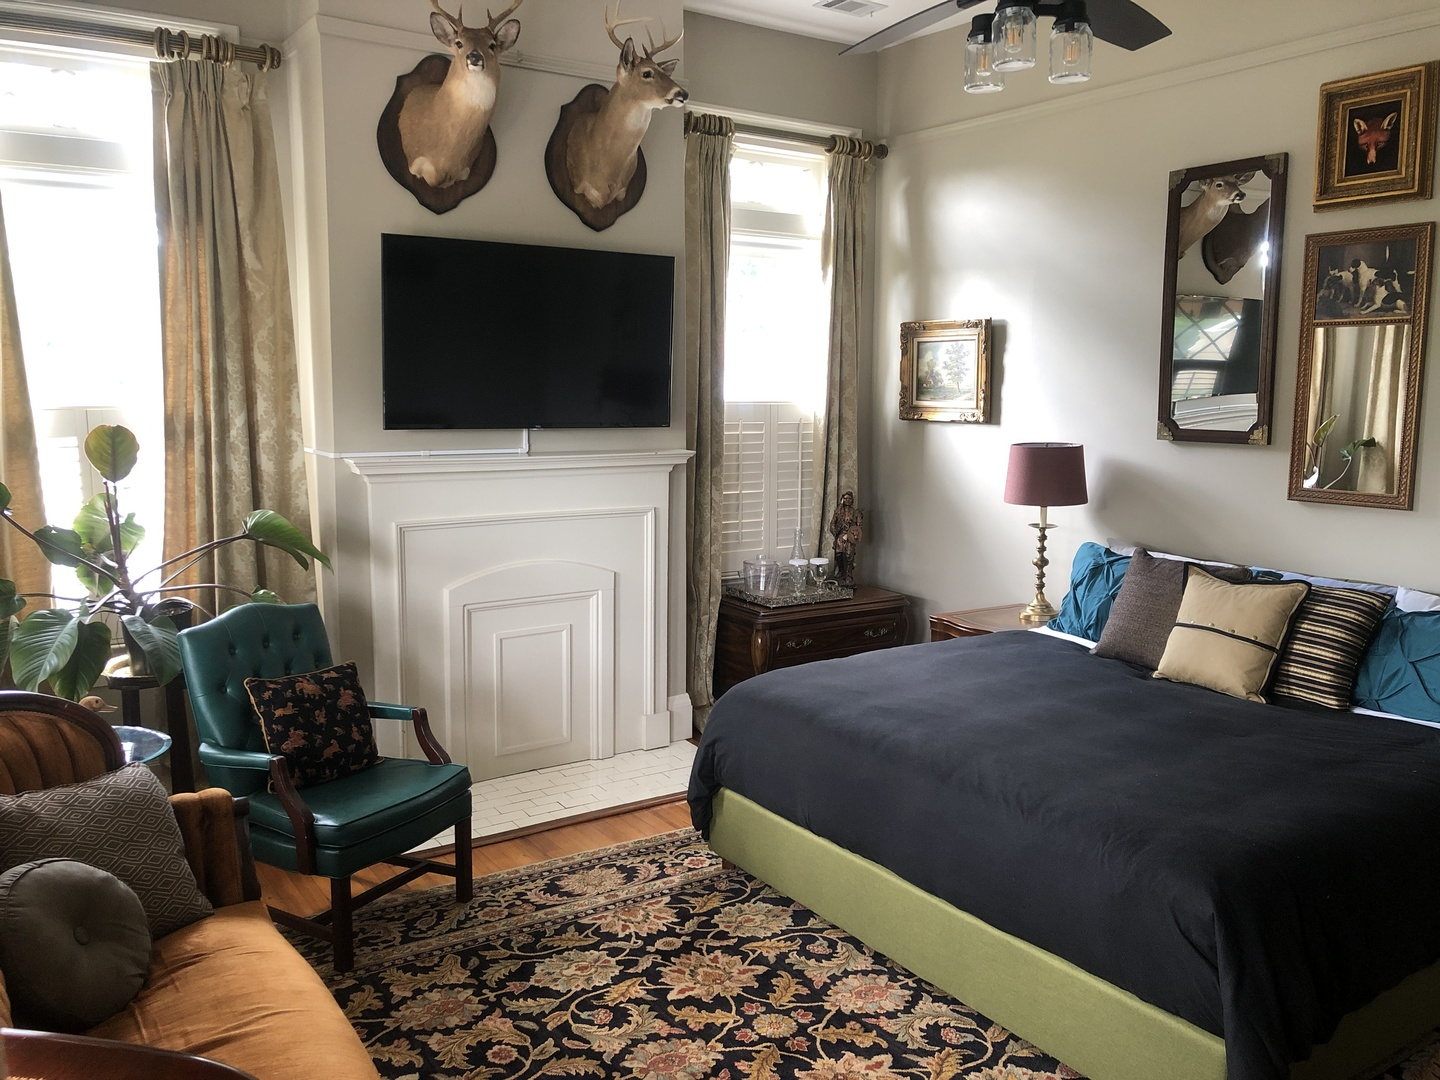 A bedroom with a bed and desk in a room at Heritage House Lodging & Events.